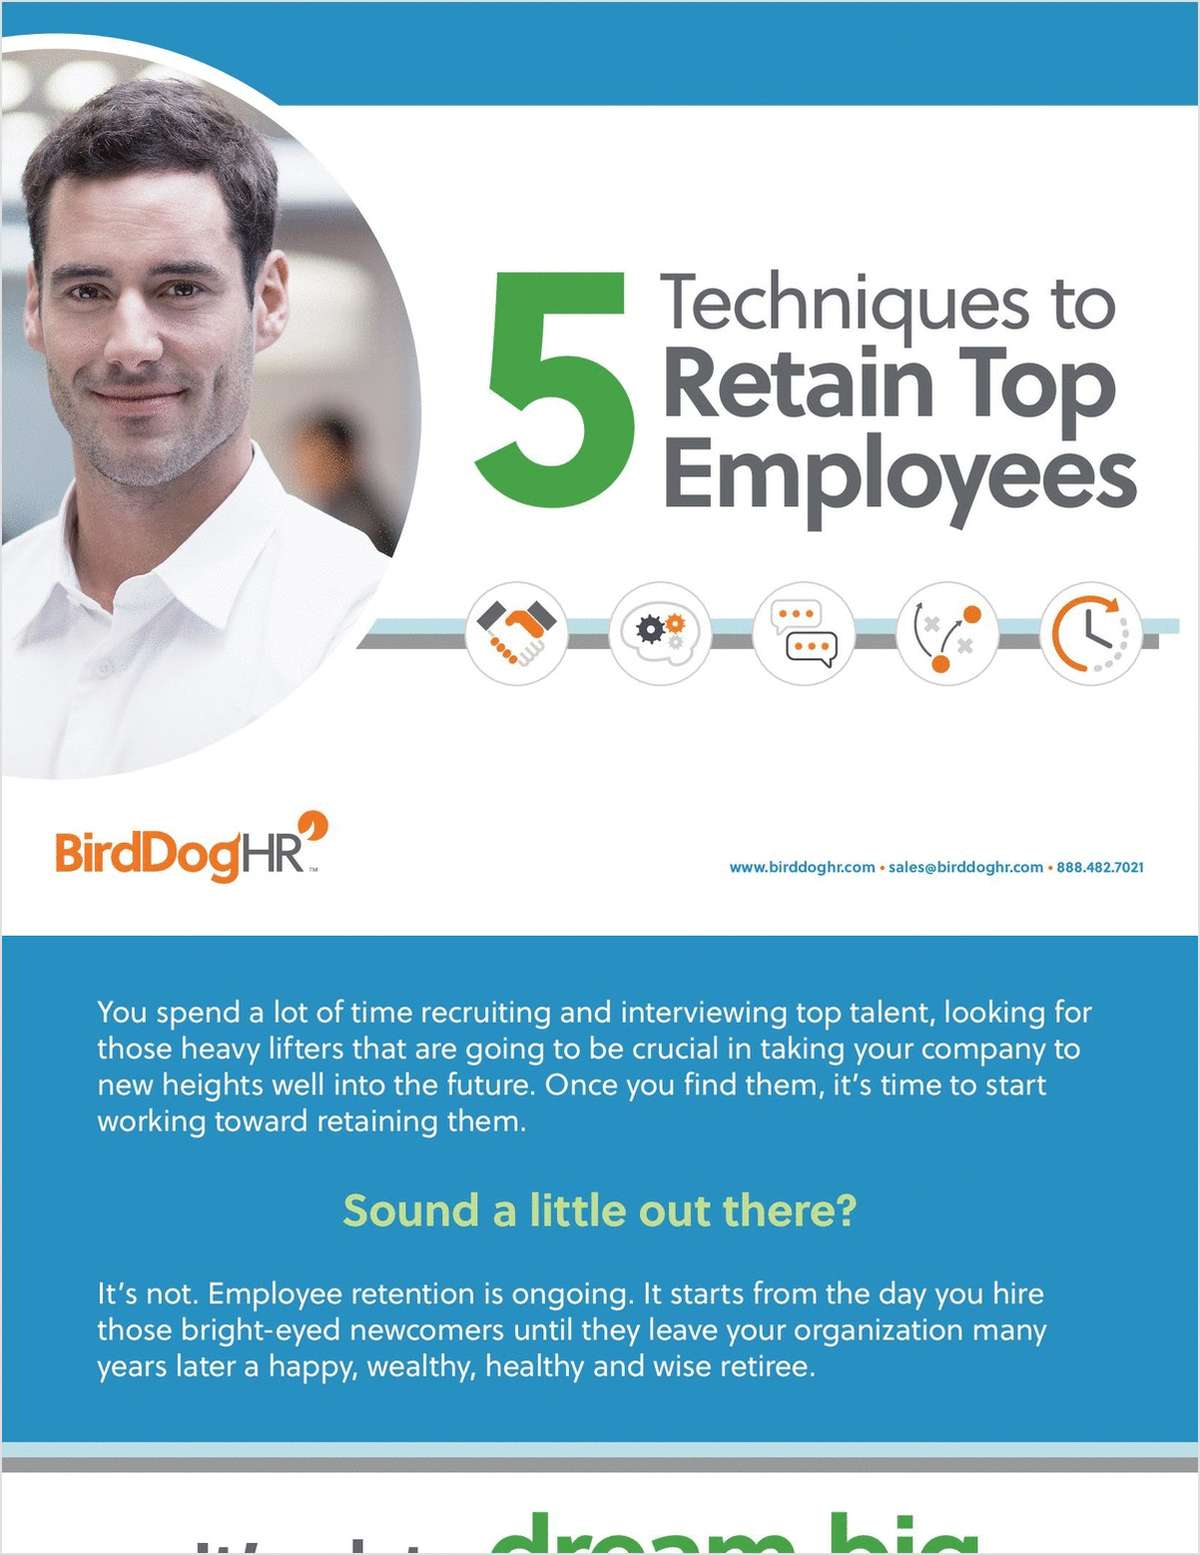 5 Techniques to Retain Top Employees